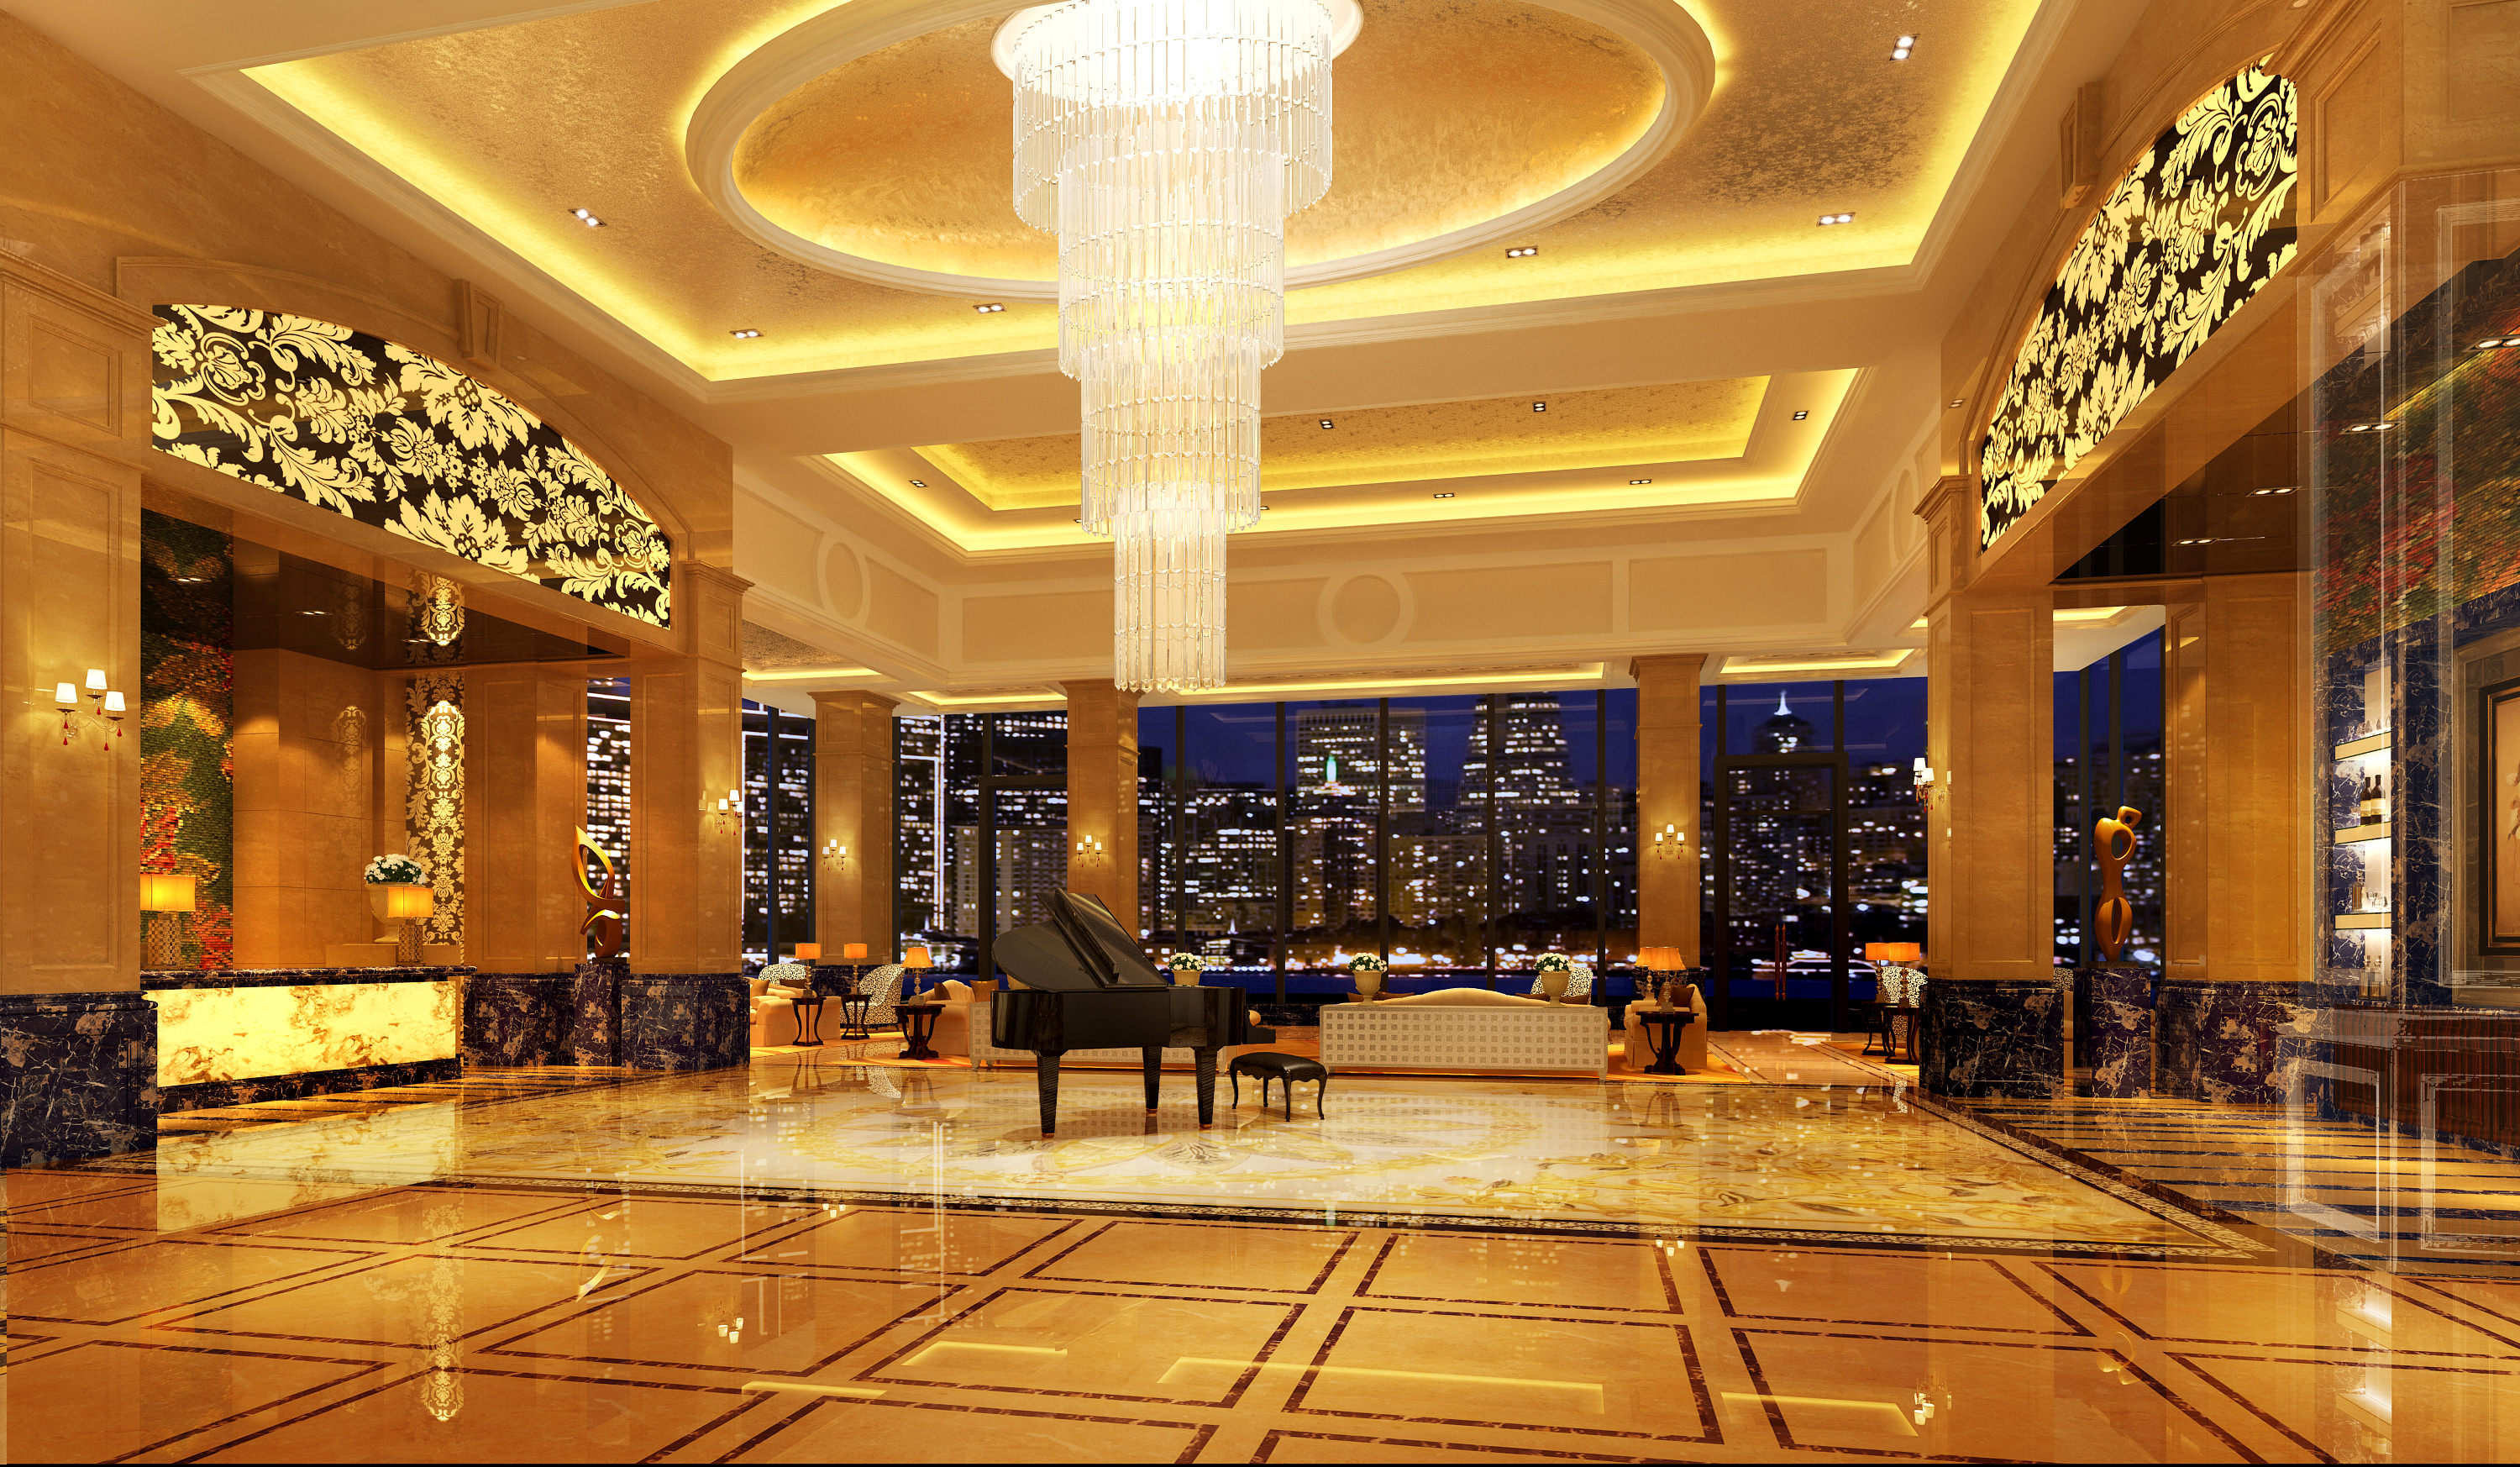 collection hotel interior collection 3d model max tga